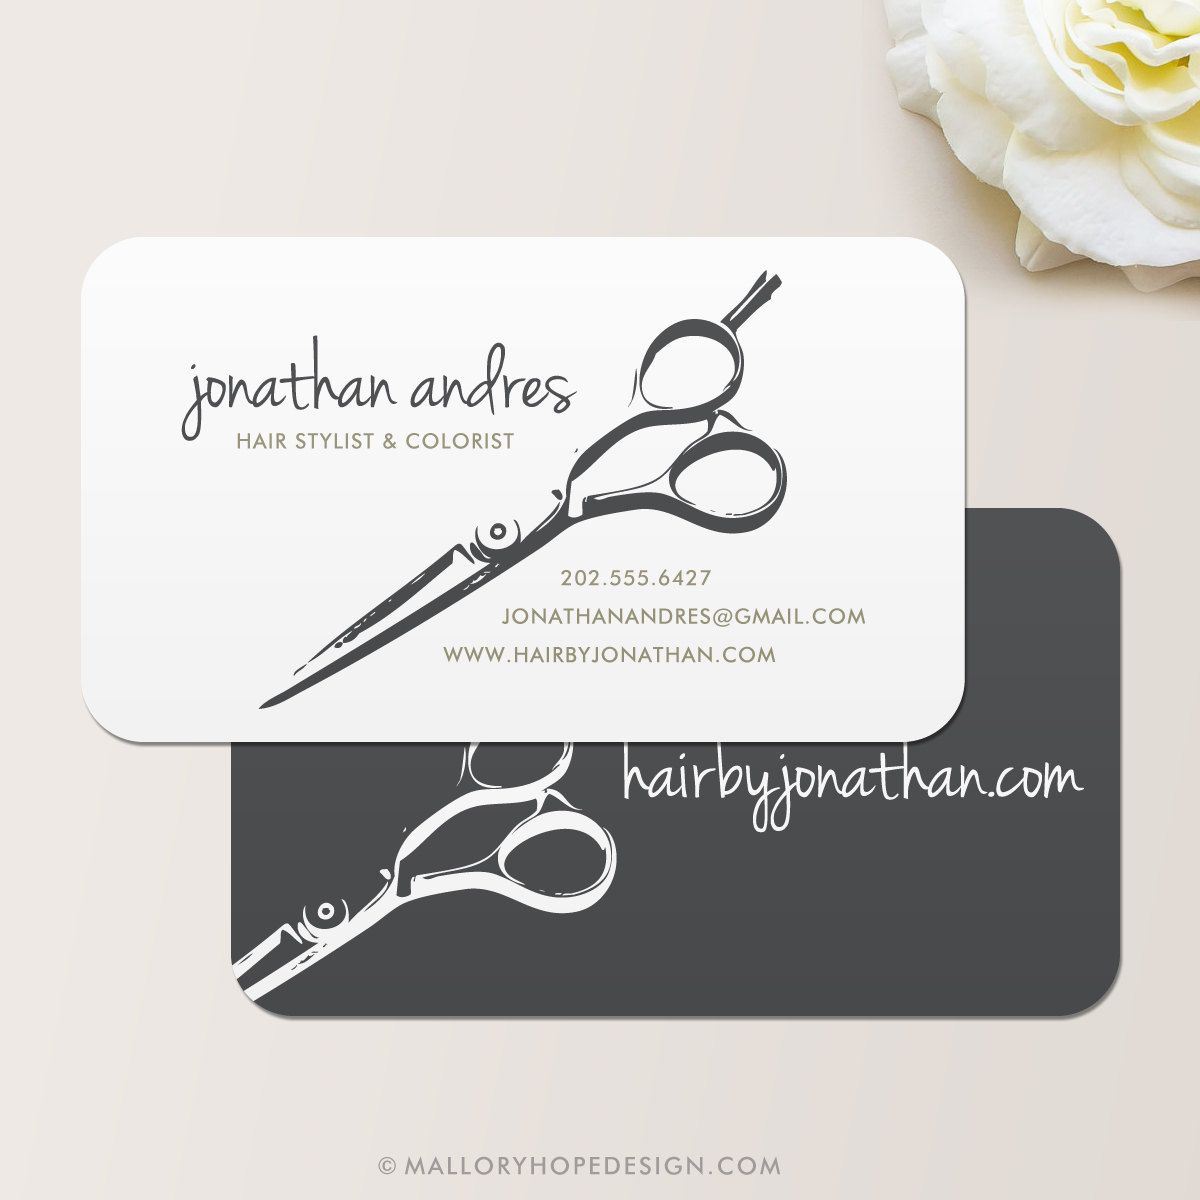 hairdresser business card - Google Търсене | Branding, Packaging ...